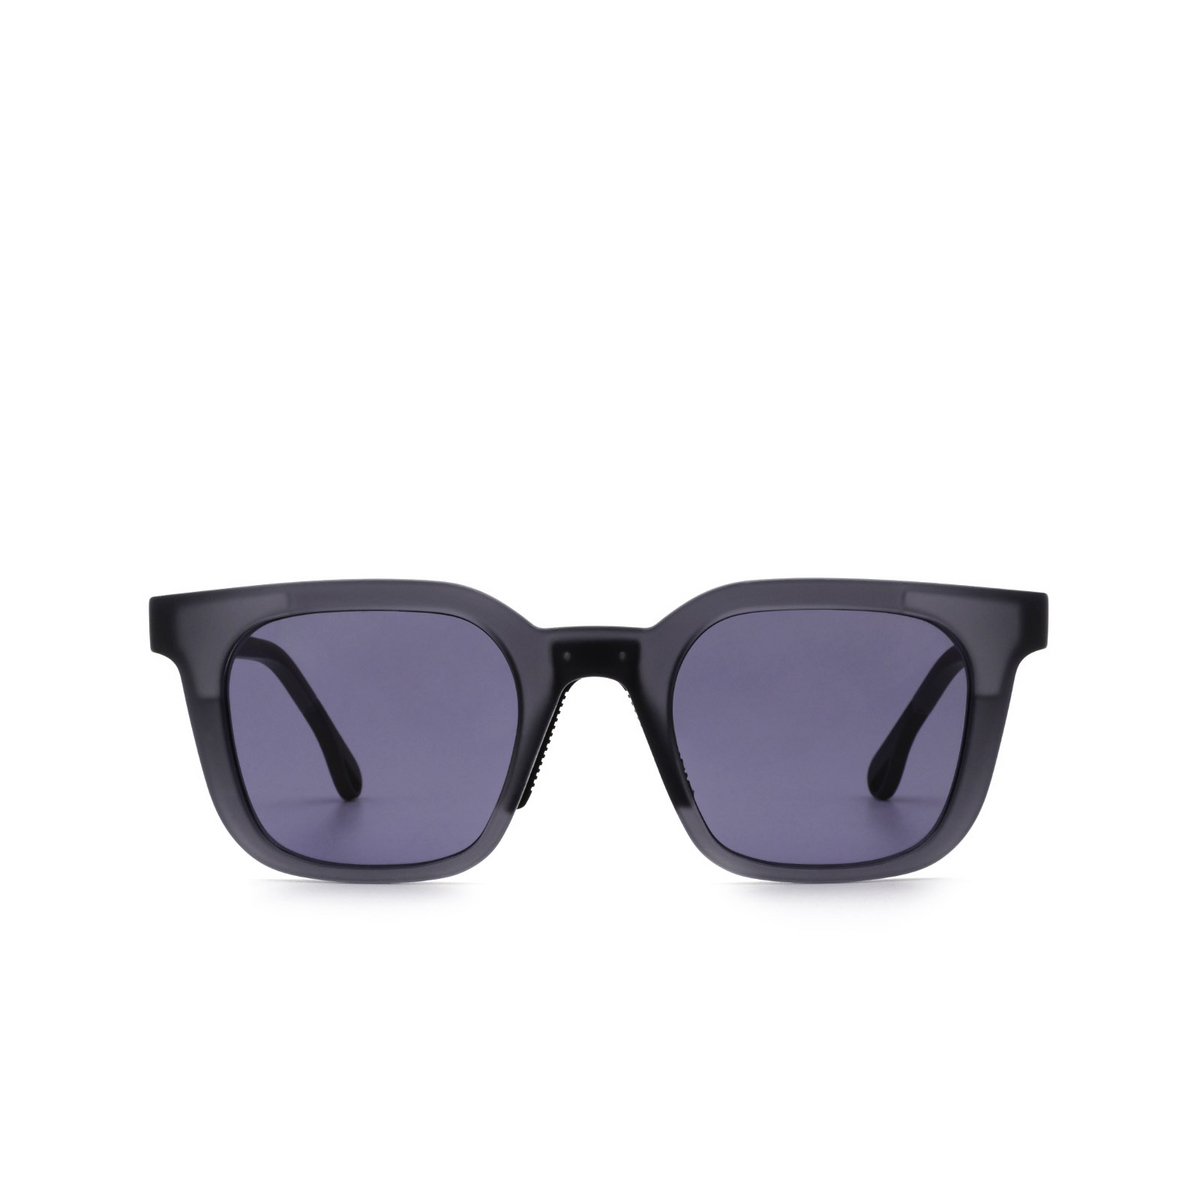 Chimi® Square Sunglasses: 04 ACTIVE color Grey - front view.